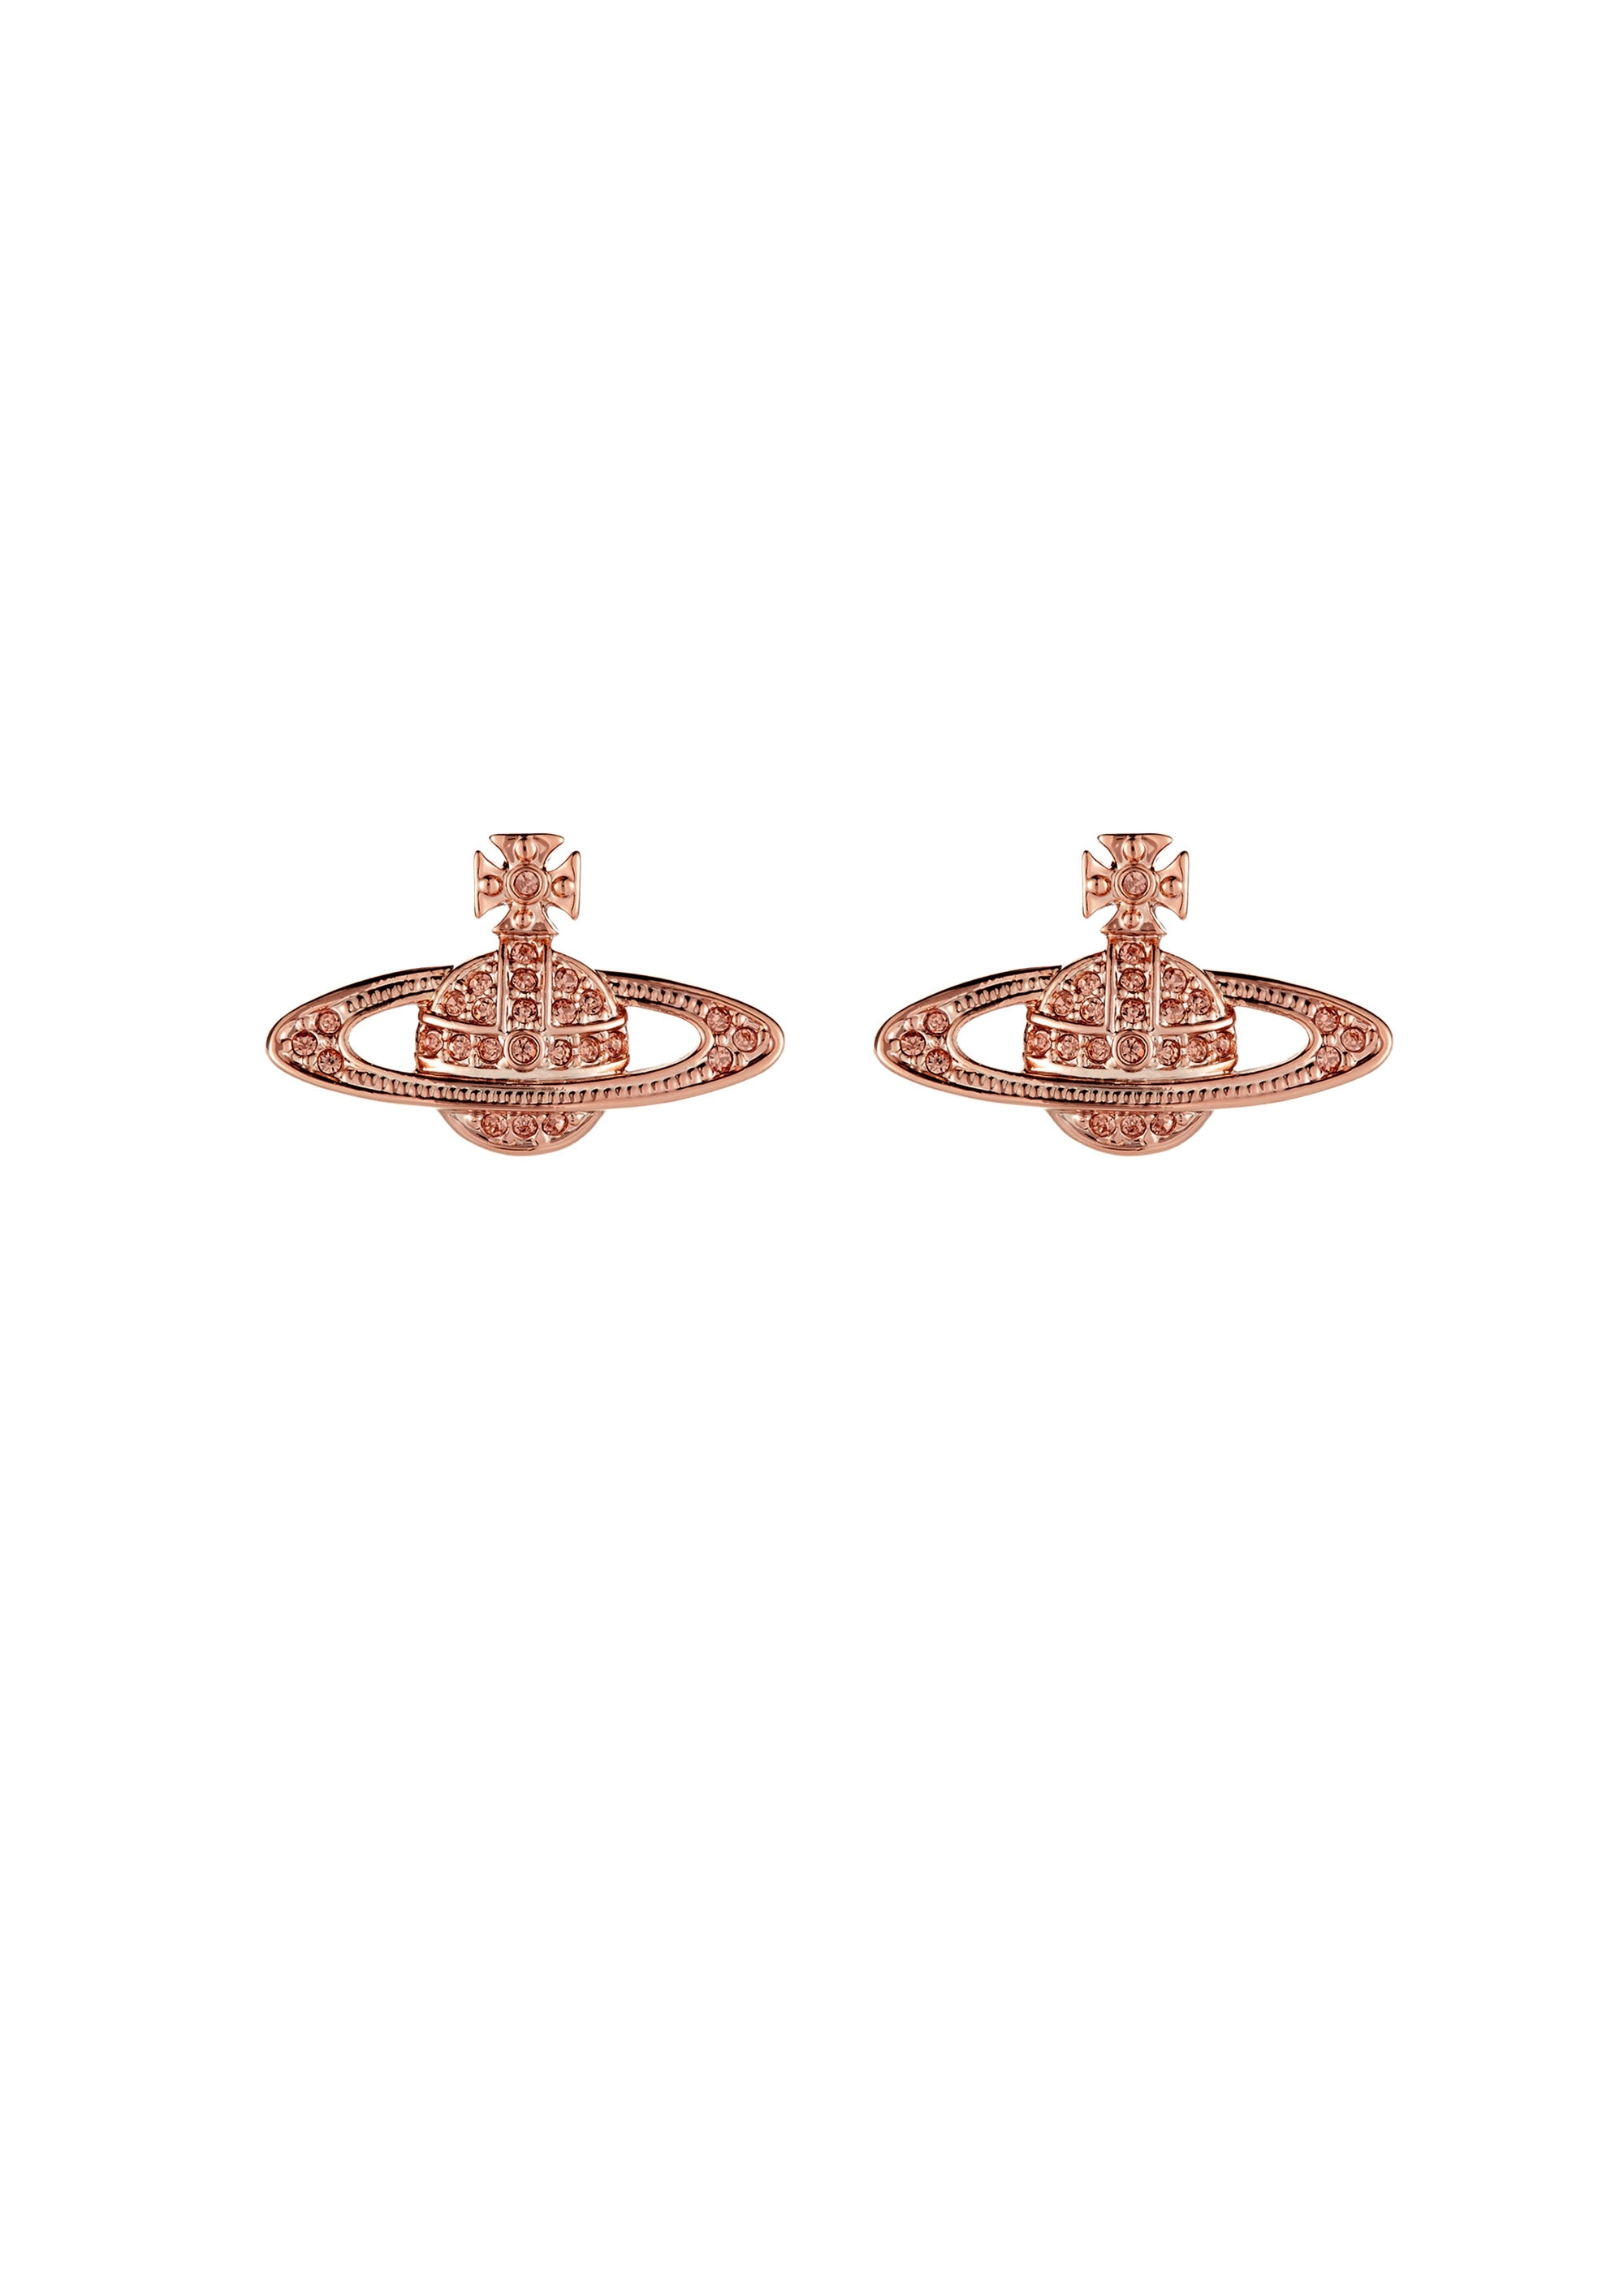 3c7fdc90d97 Vivienne Westwood Accessories Mini Bas Relief Earrings - Pink Gold ...